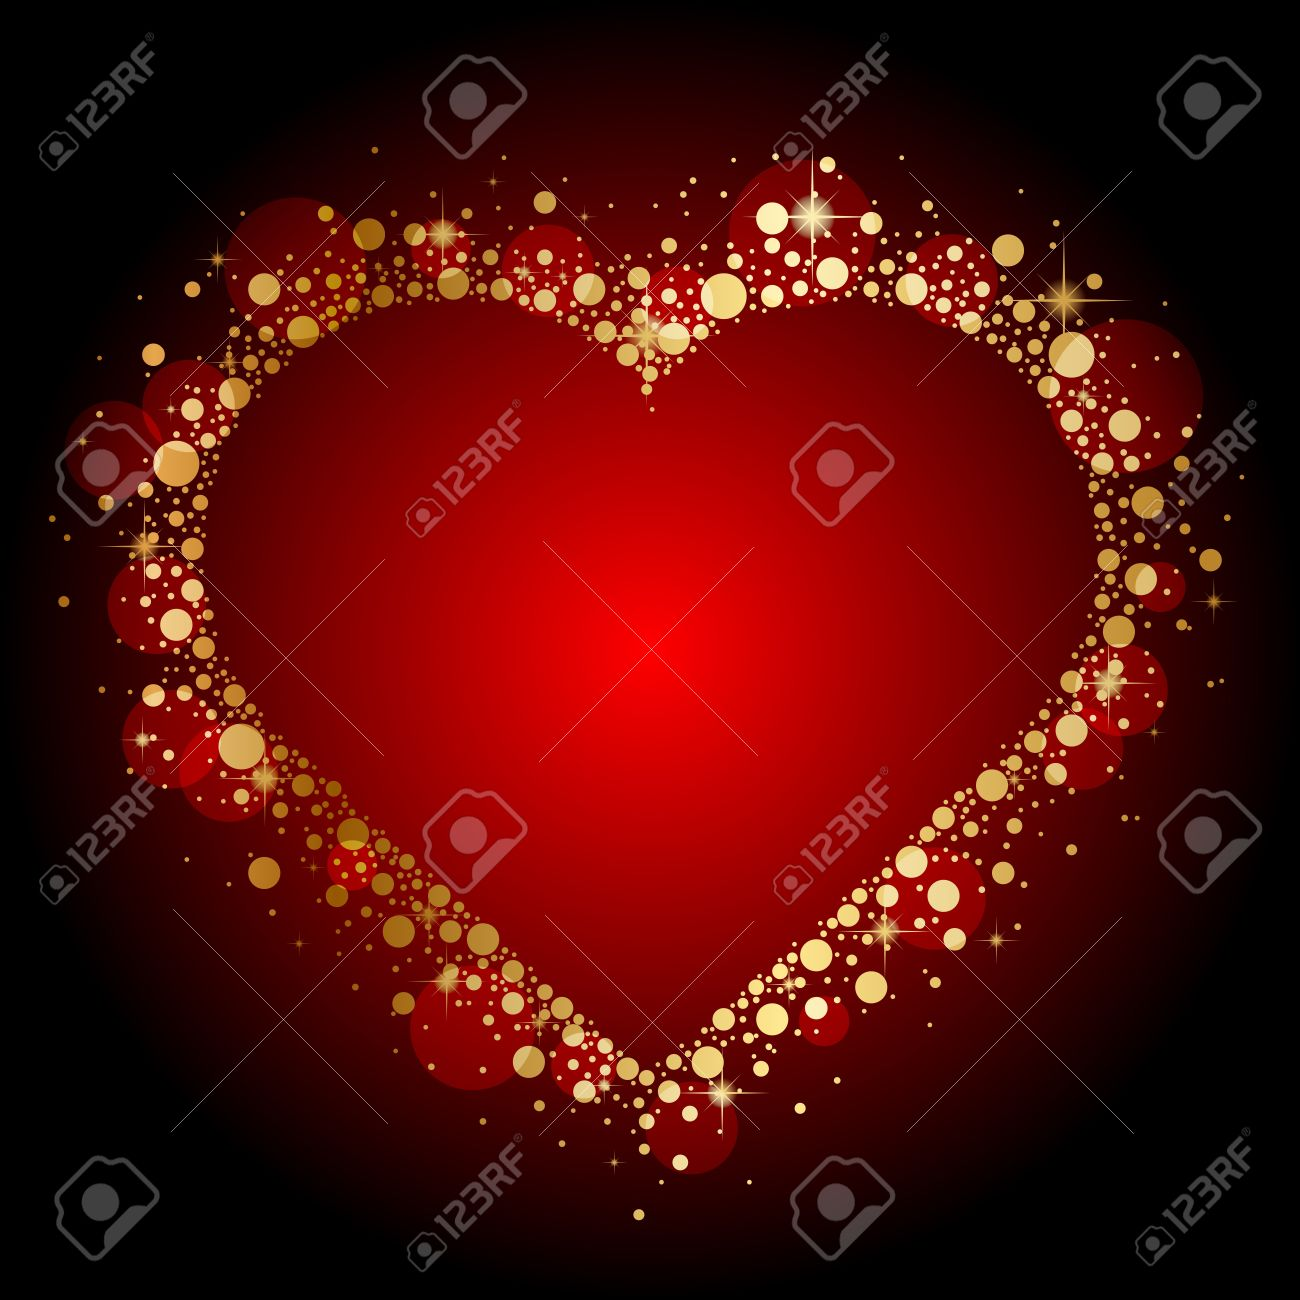 gold shiny heart on red background Stock Vector - 17968378